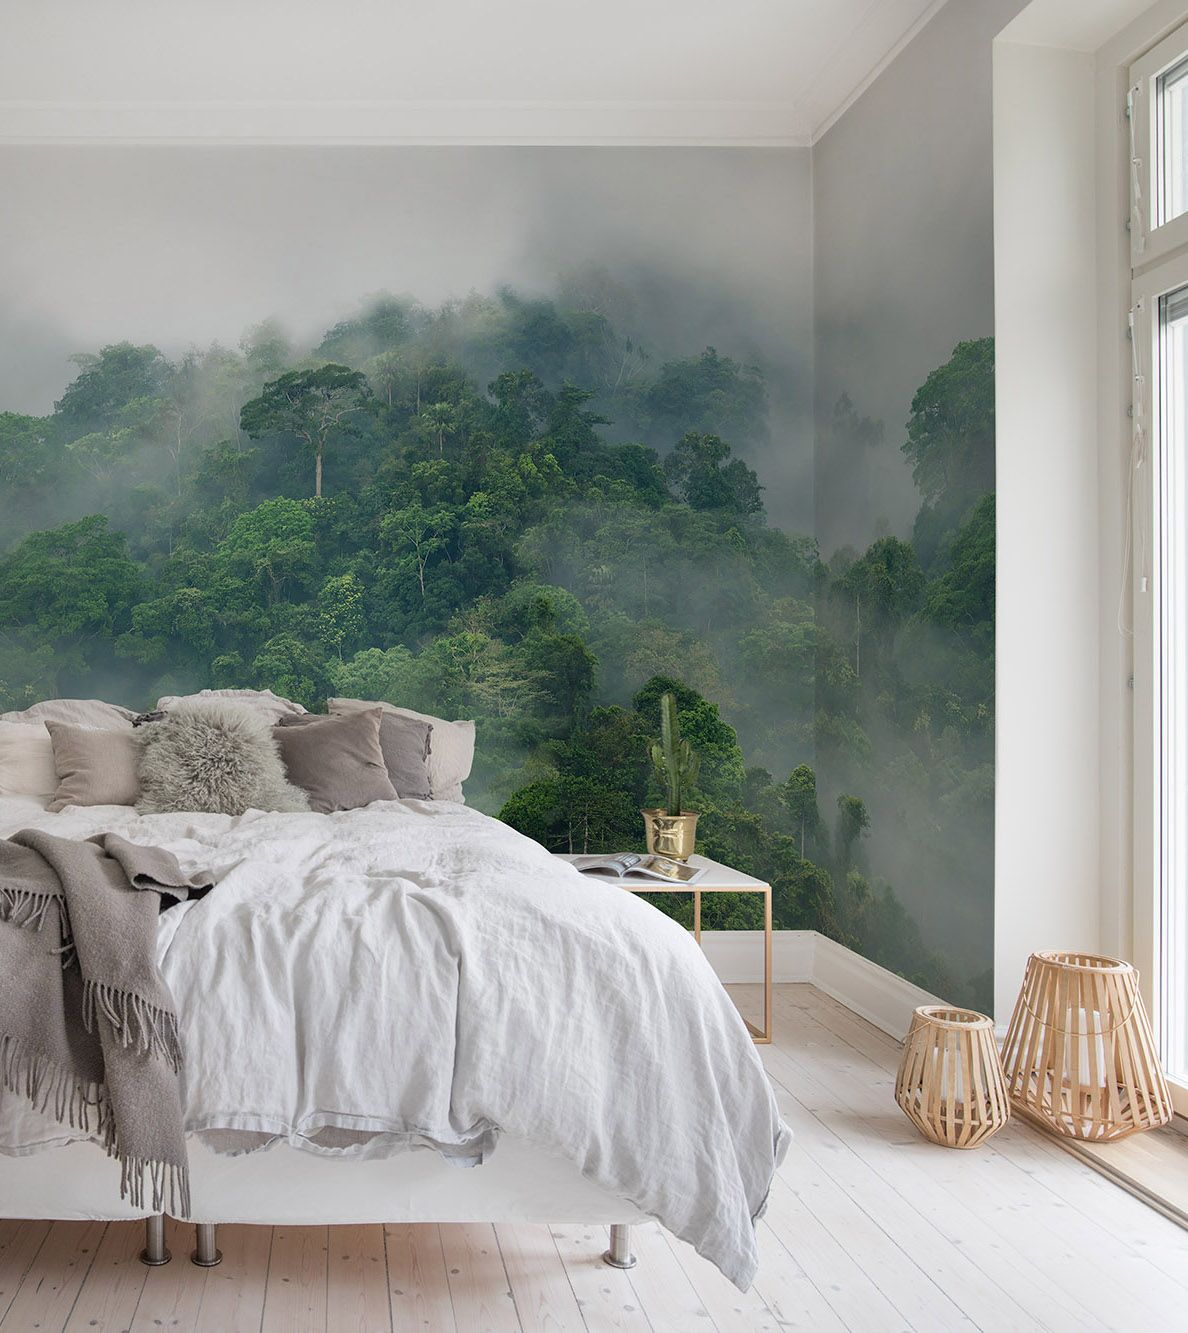 Fototapete Schlafzimmer Modern Misty Forest Home Bedroom Decor Glam Bedroom Und Home Wallpaper